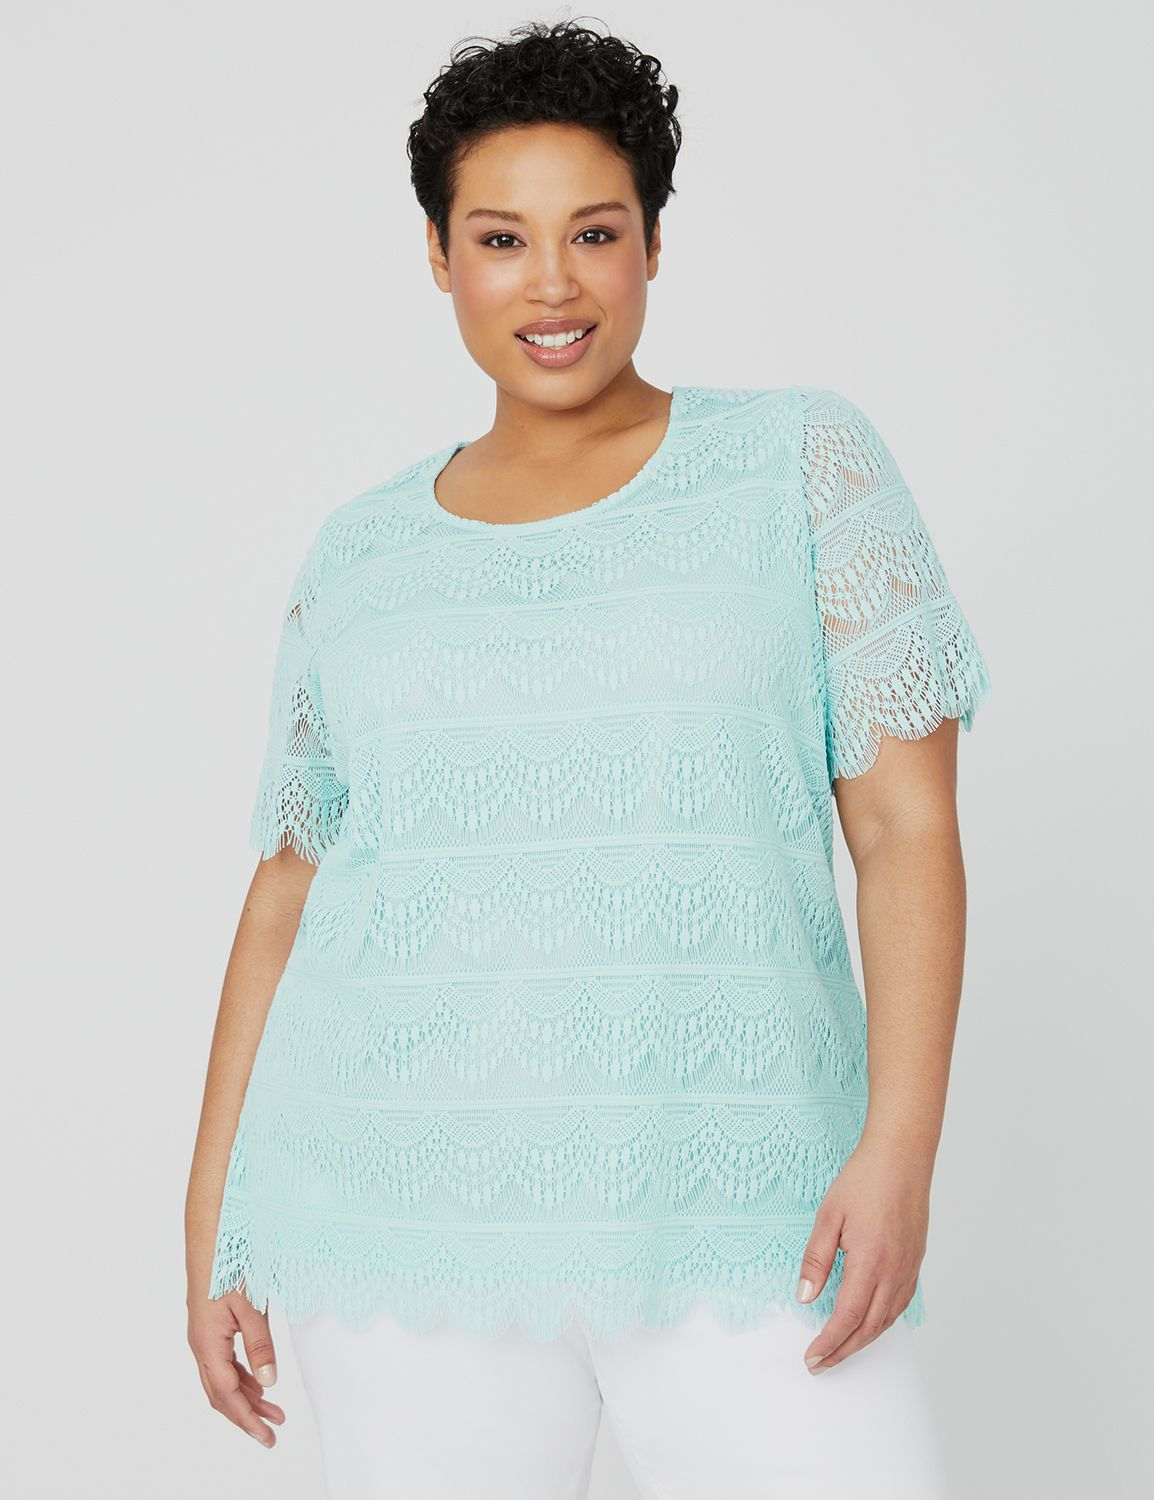 Waves of Lace Top 1087830 SCALLOP EDGE ALLOVER LACE MP-300100098